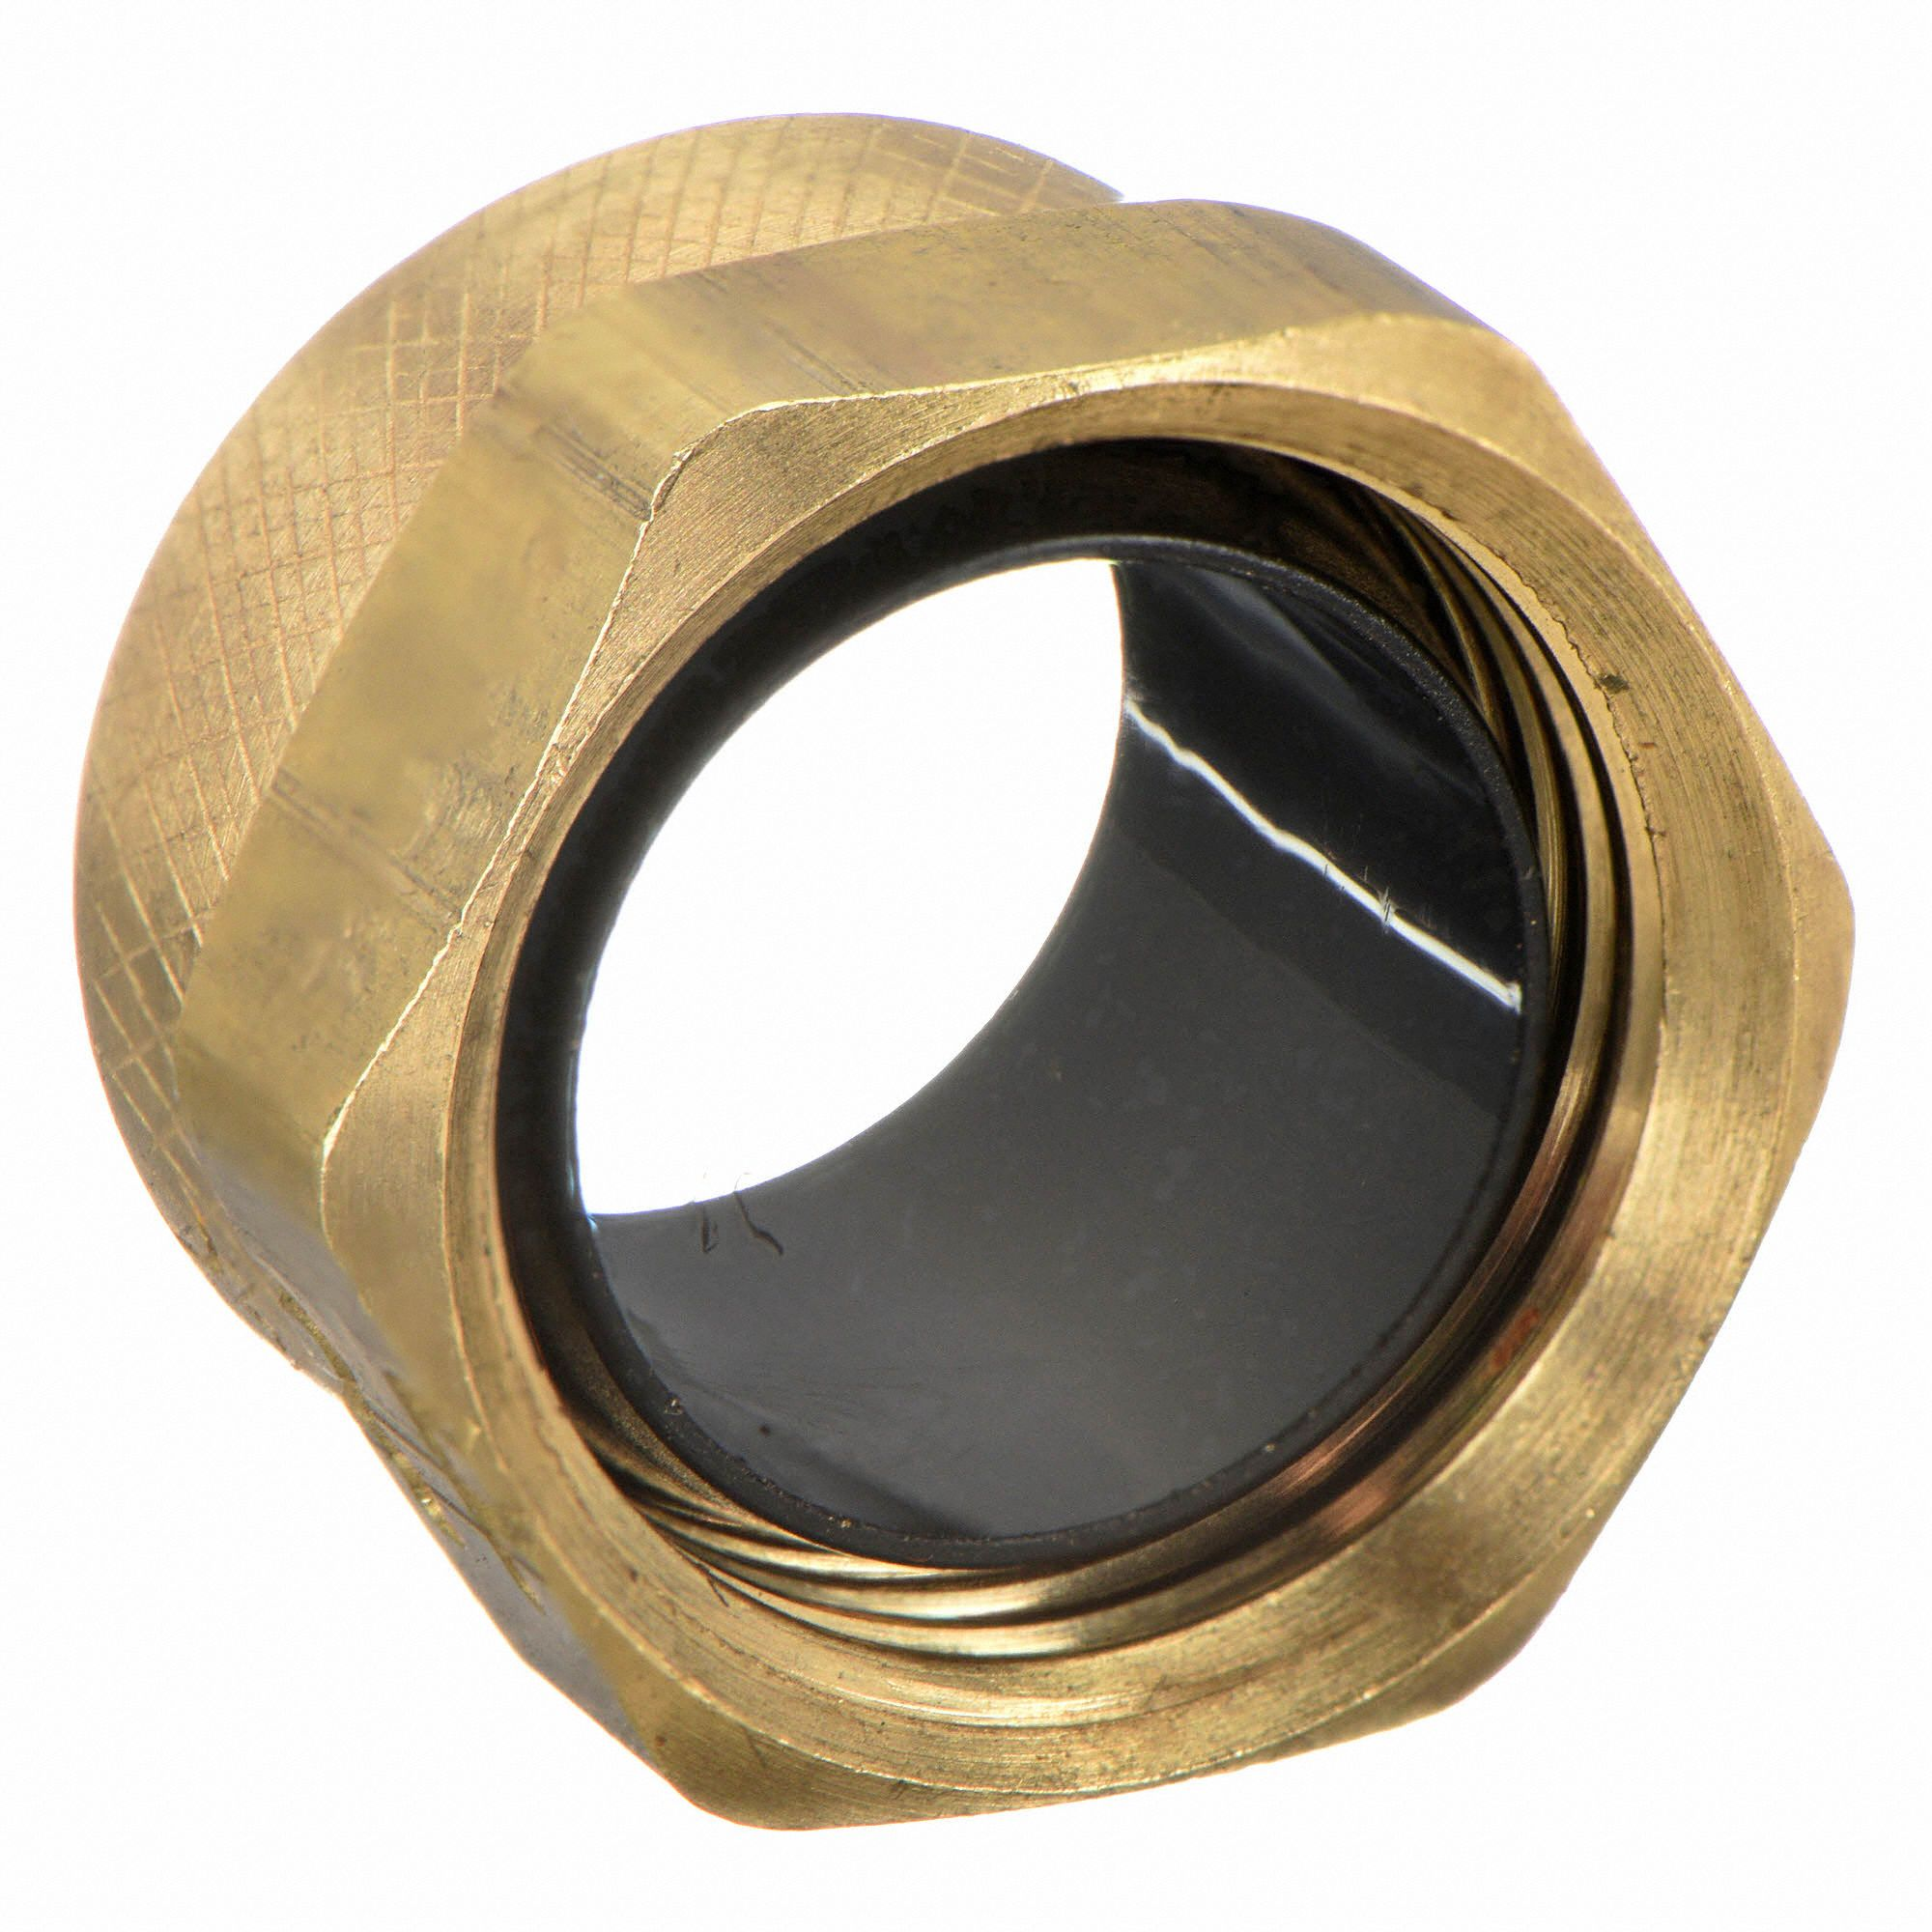 Parker 61P-5-pk10 Brass Nut Acetal Sleeve Compression Nut and Acetal Sleeve 5//16 Tube Size Pack of 10